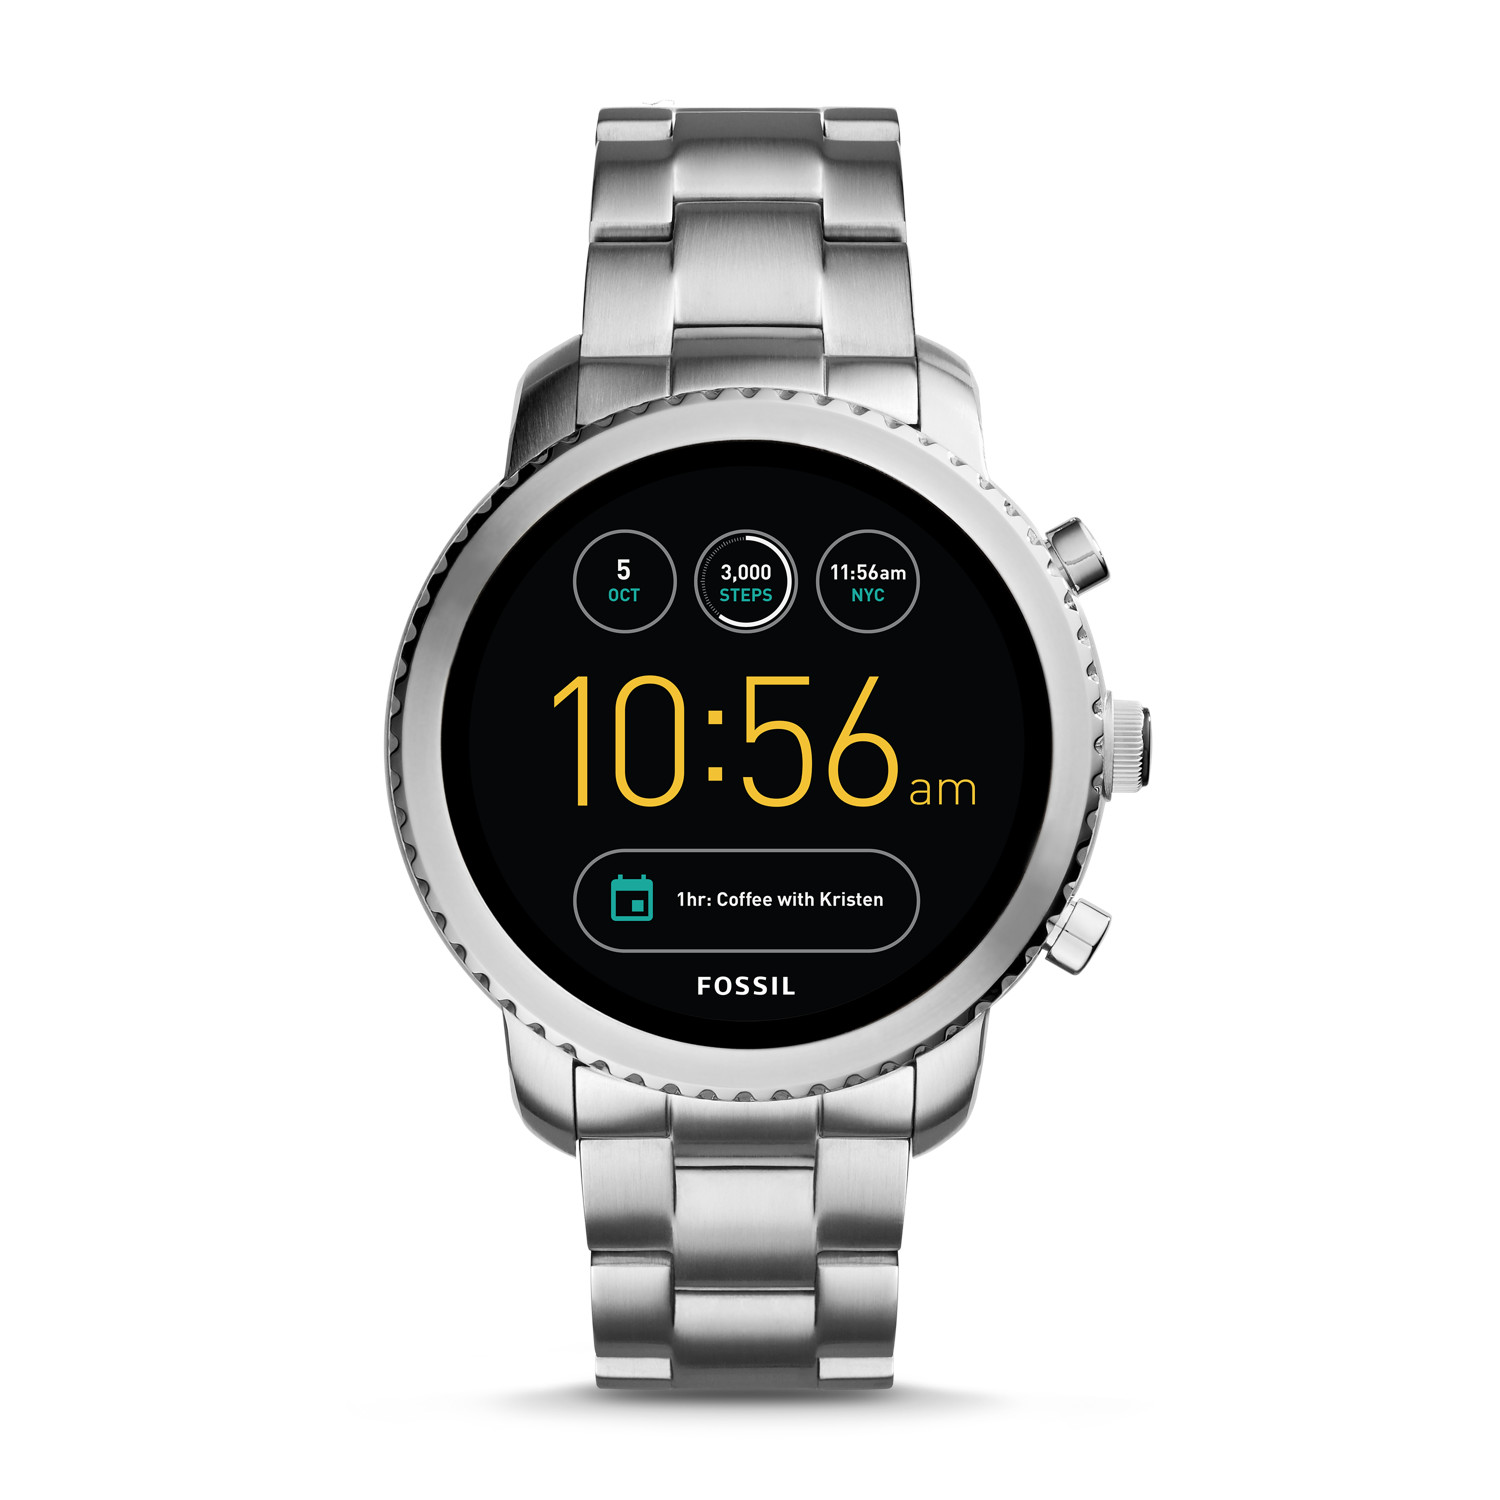 fossil-smartwatch.jpeg